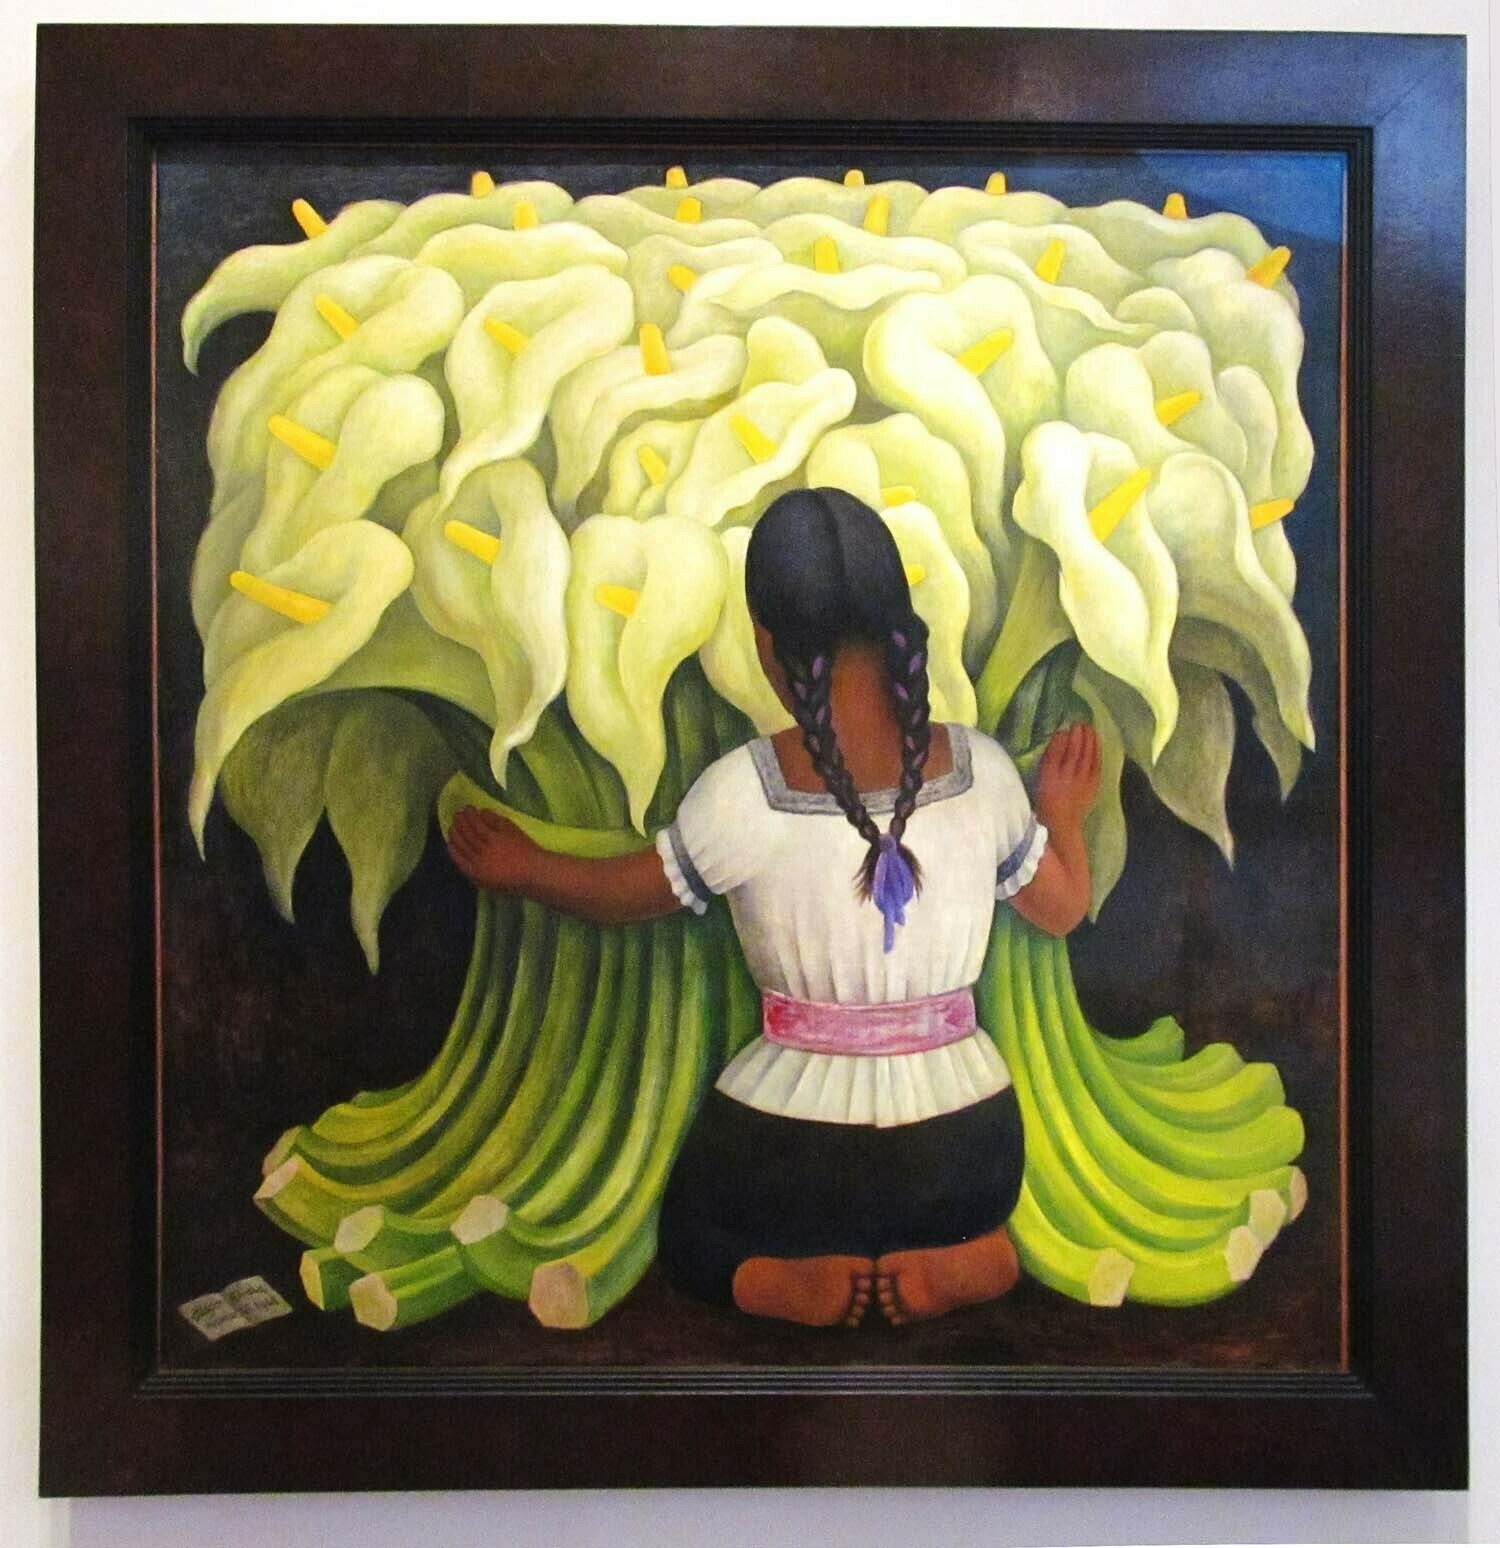 US SELLER-Diego Rivera The Vendor of Alcatraces art poster lounge room accent